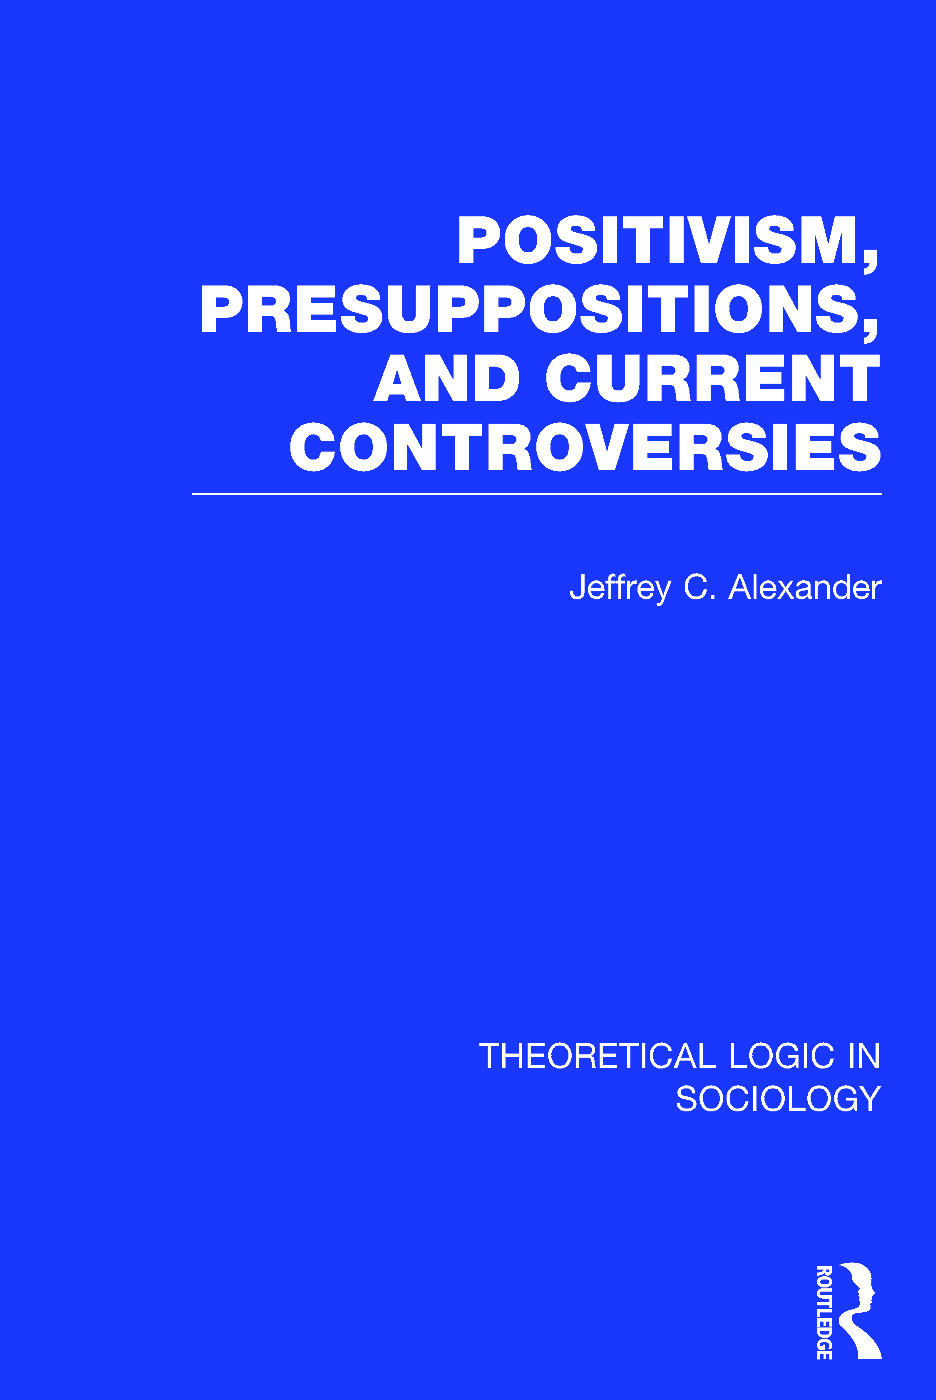 Positivism, Presupposition and Current Controversies (Theoretical Logic in Sociology) book cover